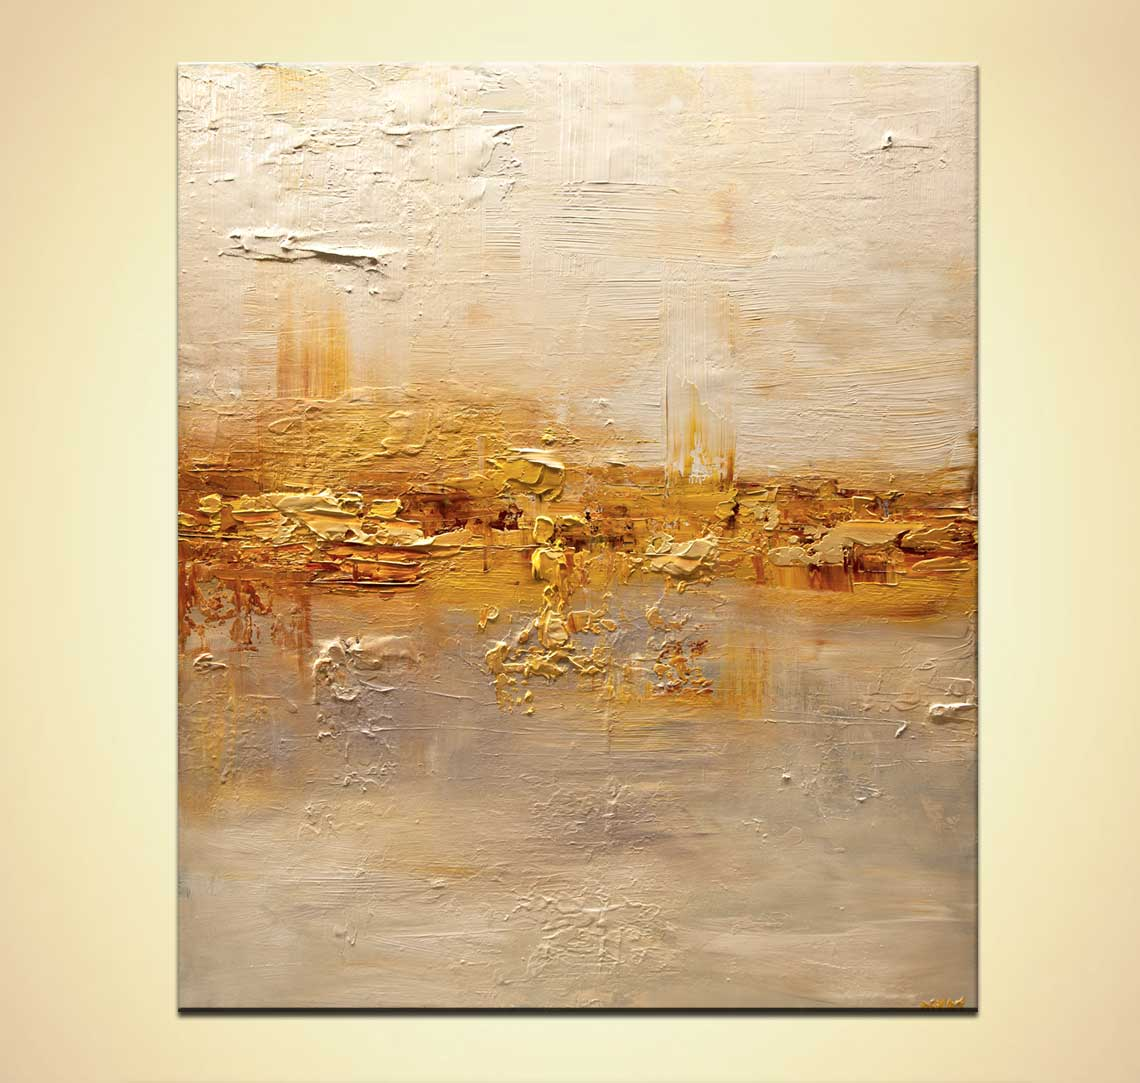 Abstrakte Bilder Gold Silber Buy Gold Cream Textured Modern Abstract Art #7958